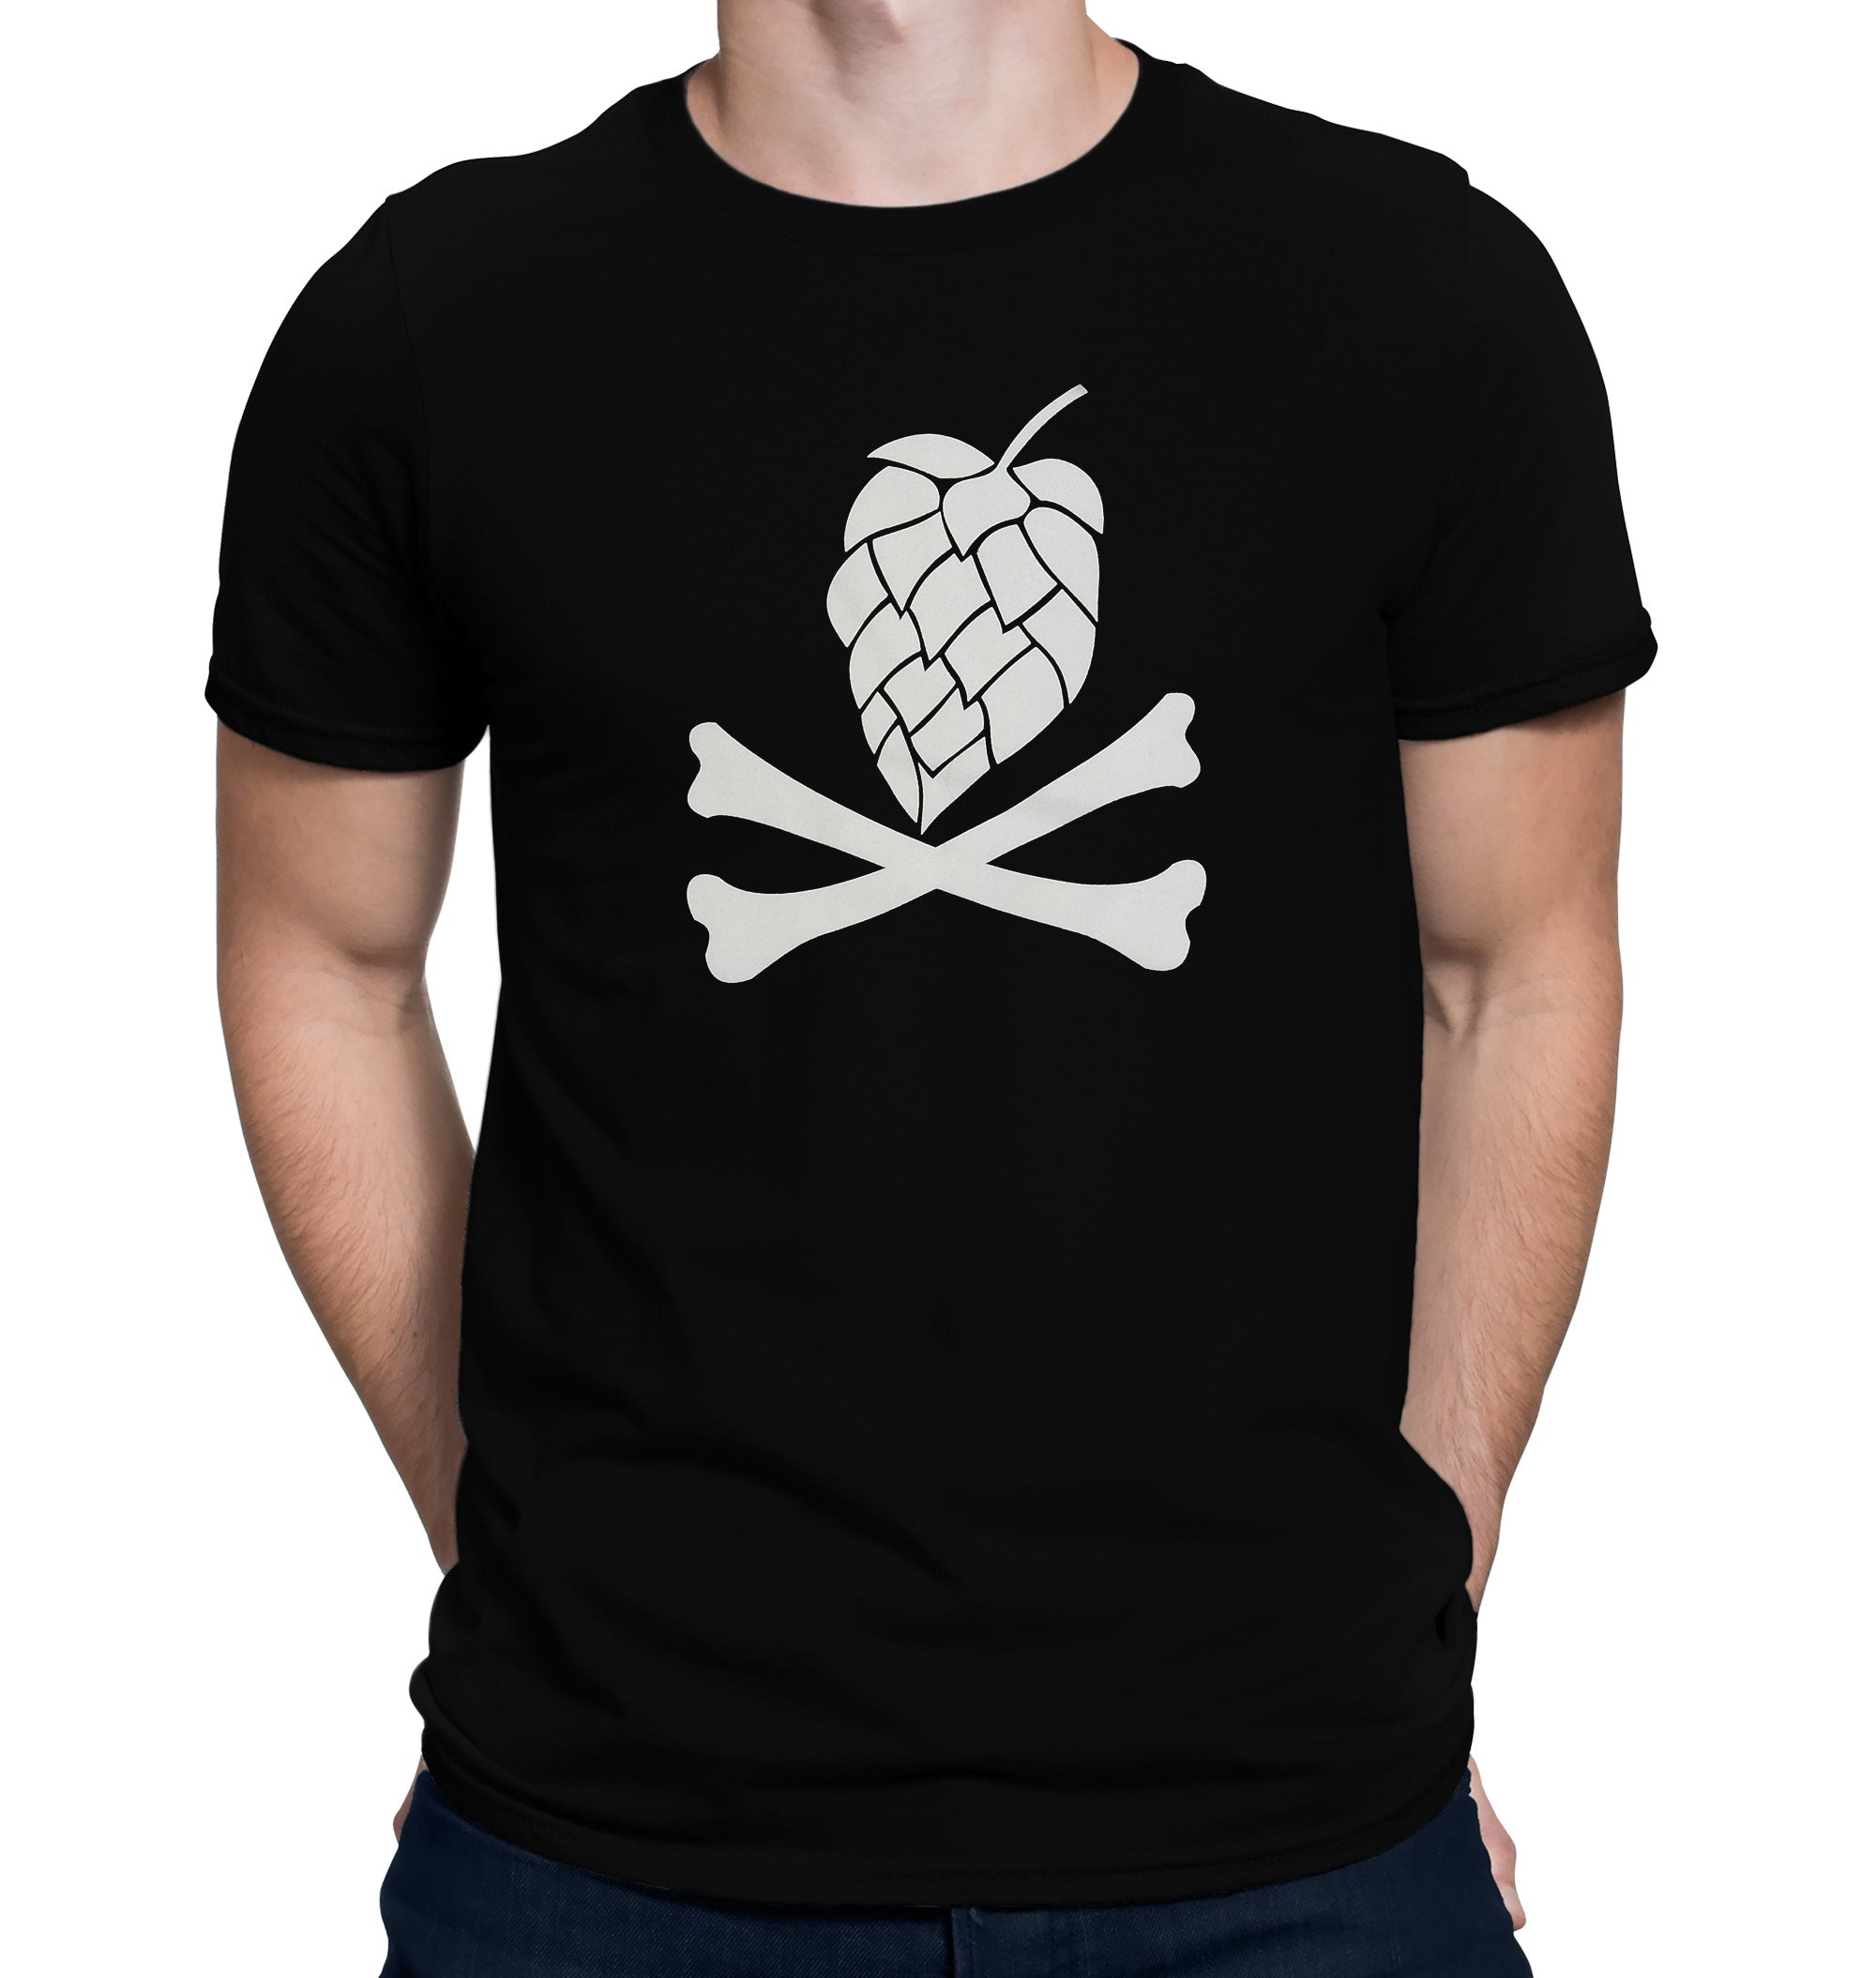 Hops and Crossbones Craft Beer T-Shirt on Model